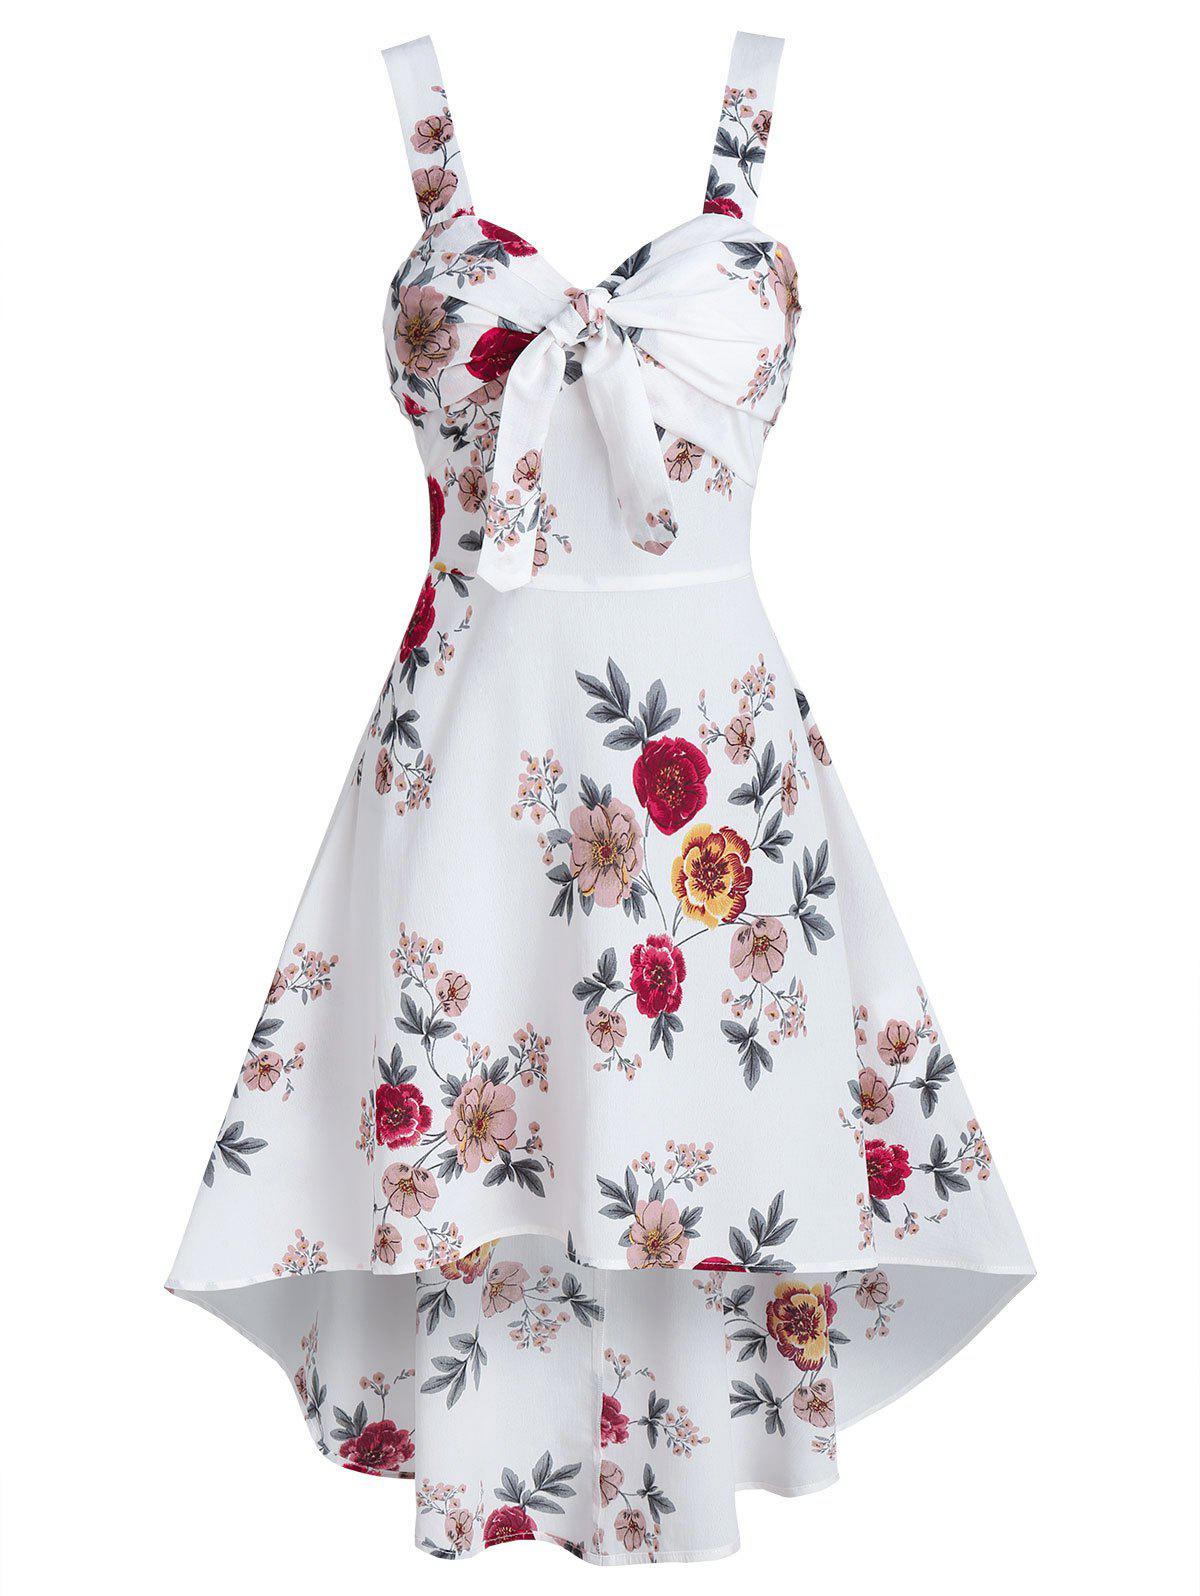 Hot Sleeveless Floral Print Knotted High Low Dress